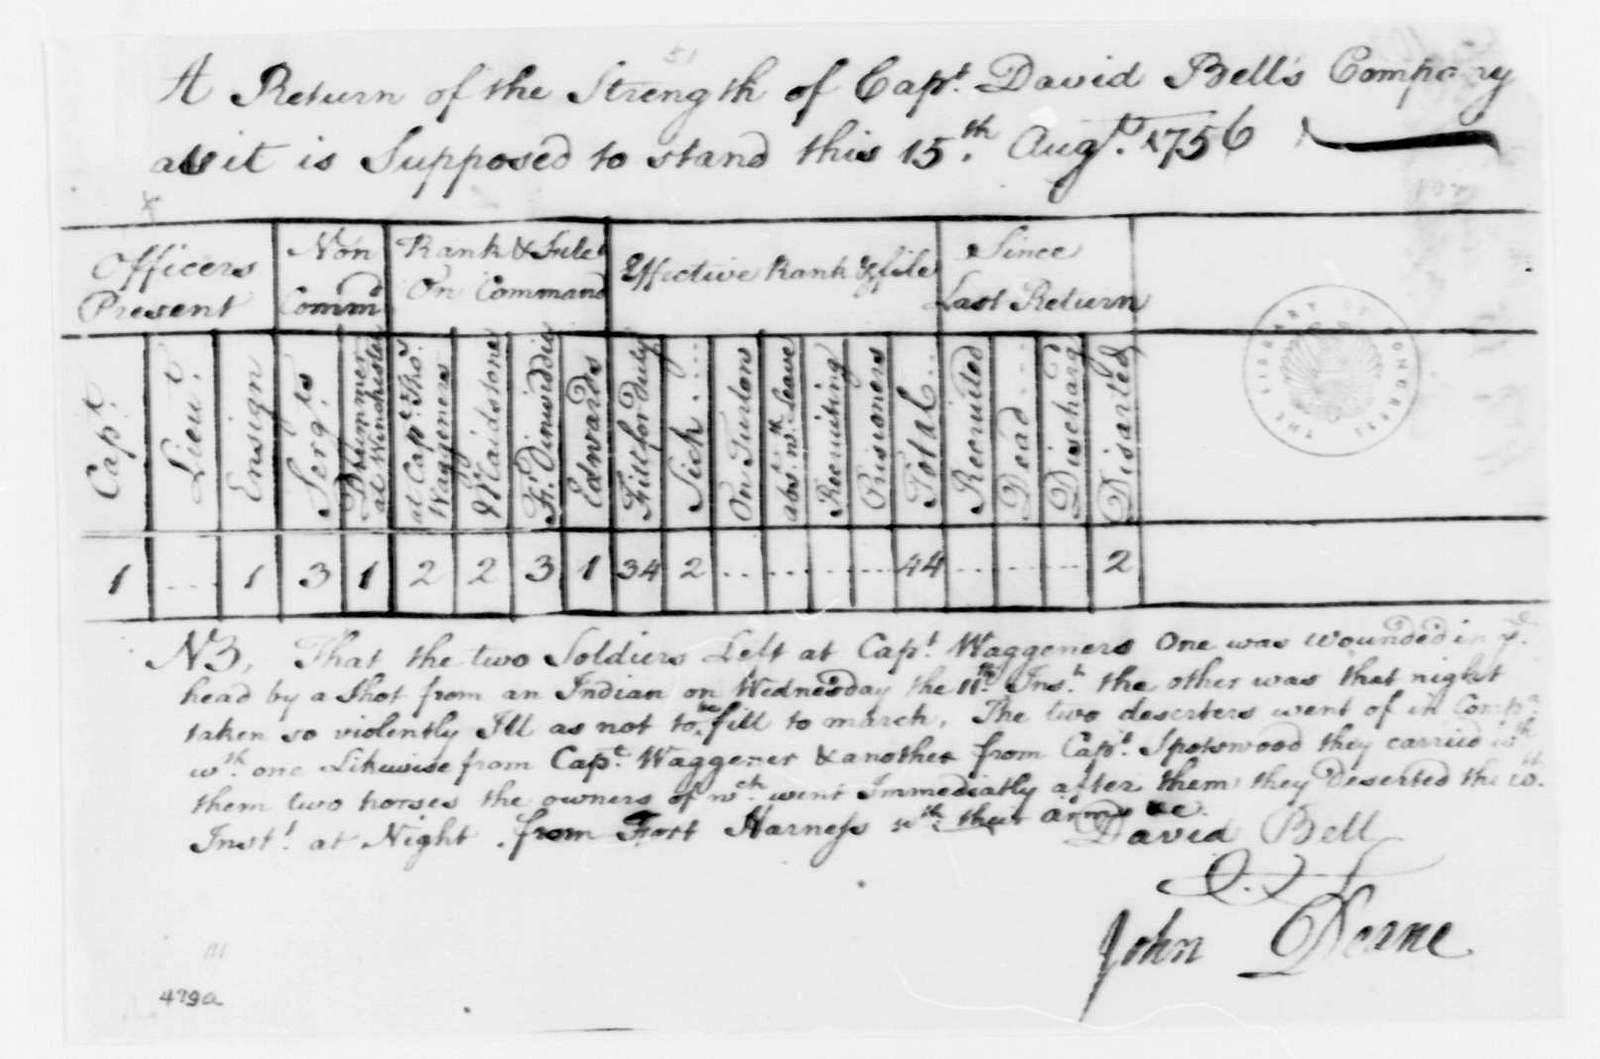 George Washington Papers, Series 4, General Correspondence: David Bell, August 15, 1756, Report on Troop Strength at Fort Washington; with Copies